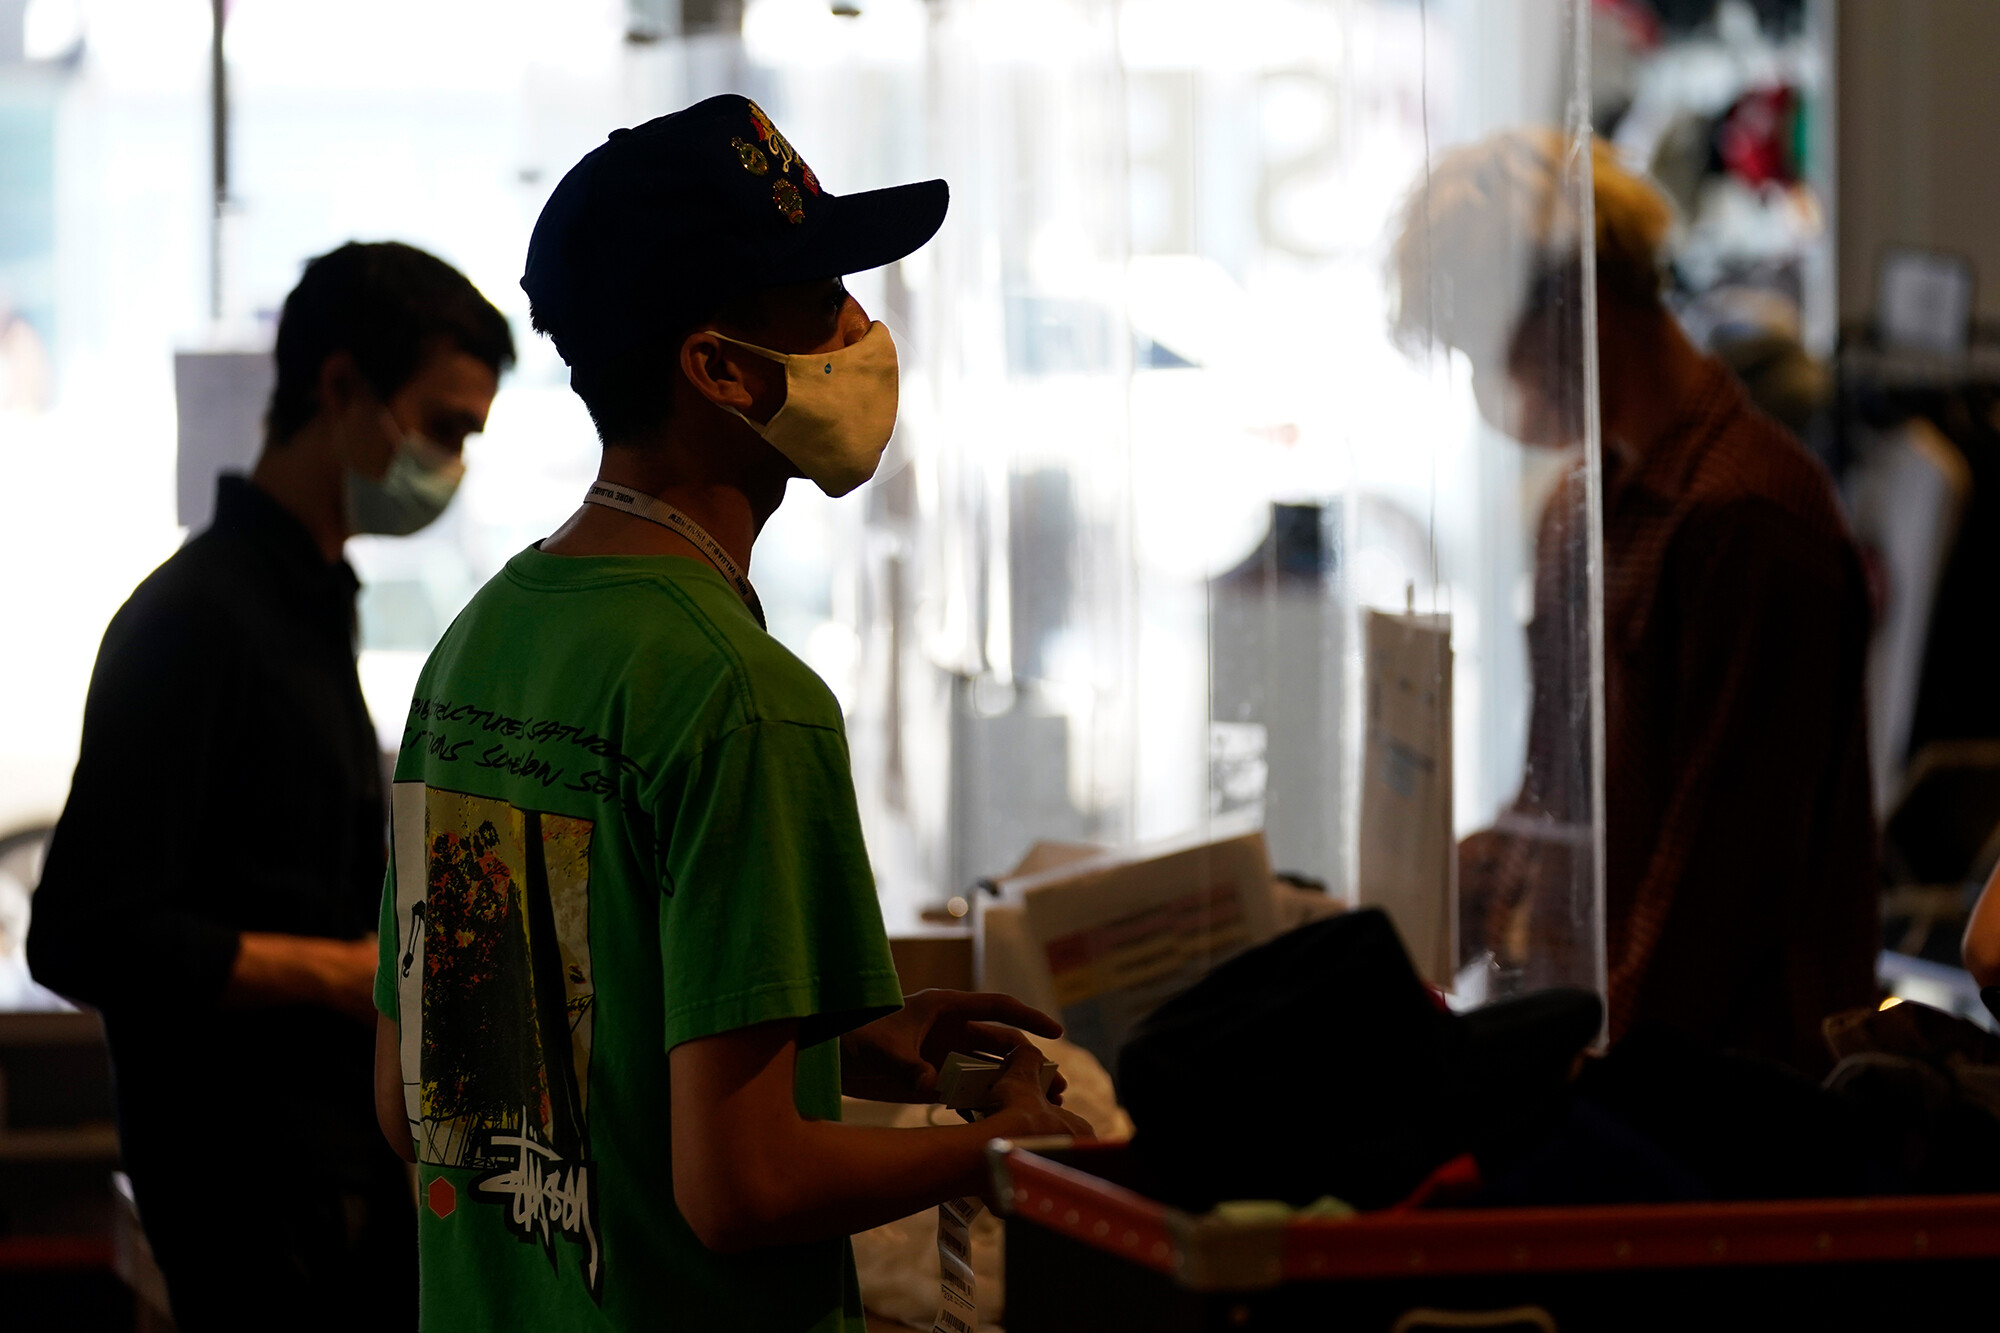 New CDC mask guidance throws stores' policies into flux